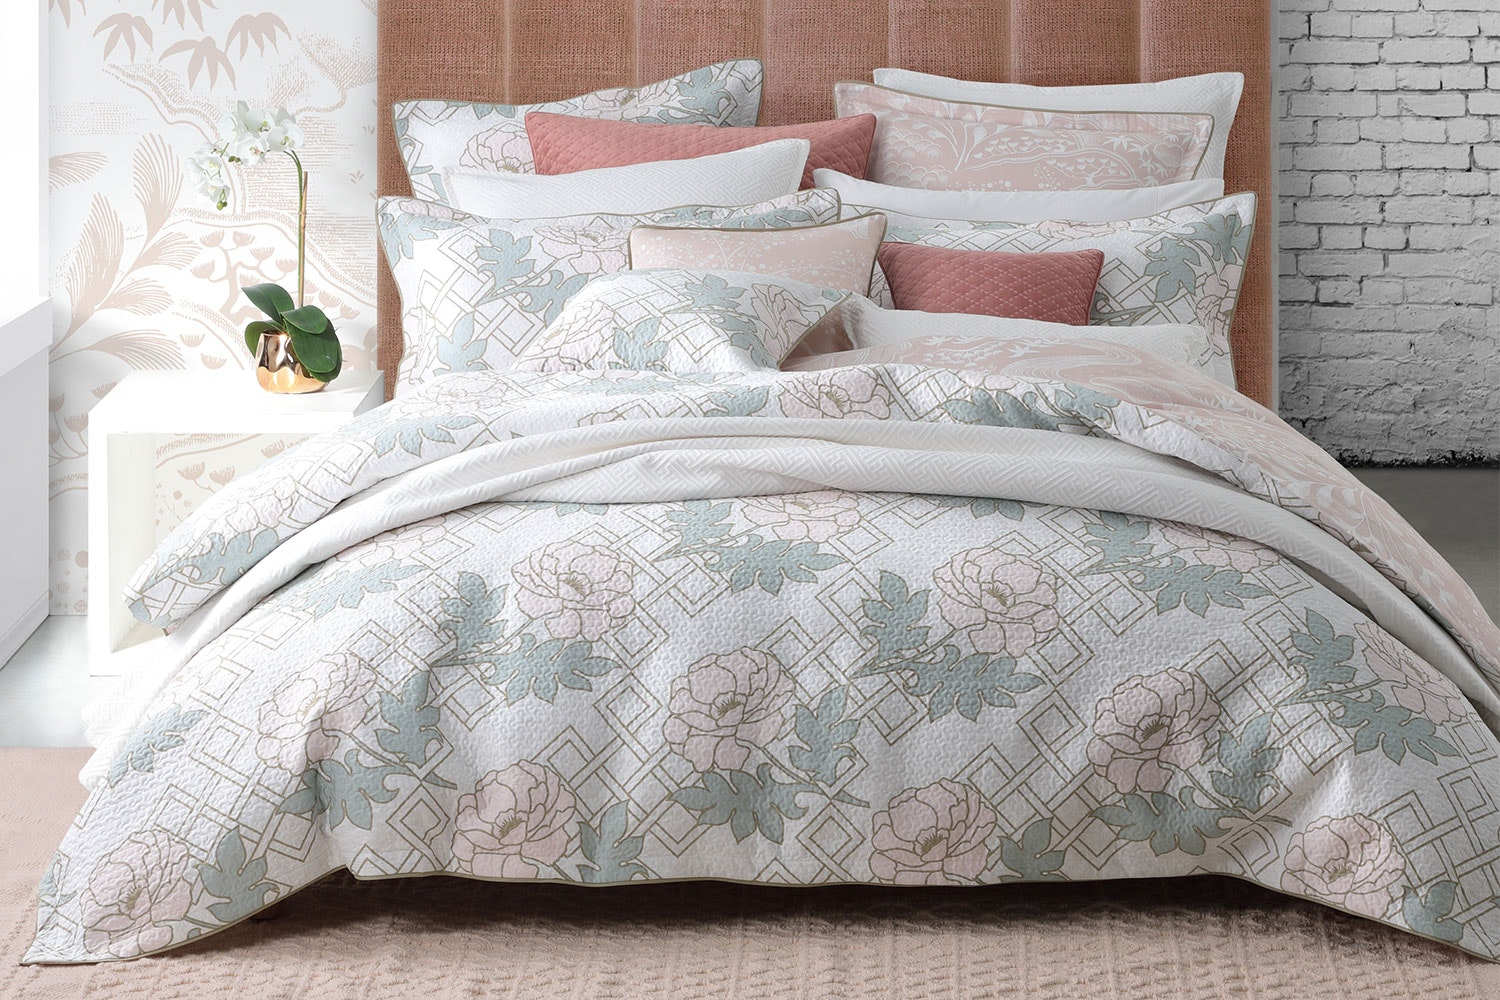 Floral Trellis Blush Duvet Cover Set by Florence Broadhurst